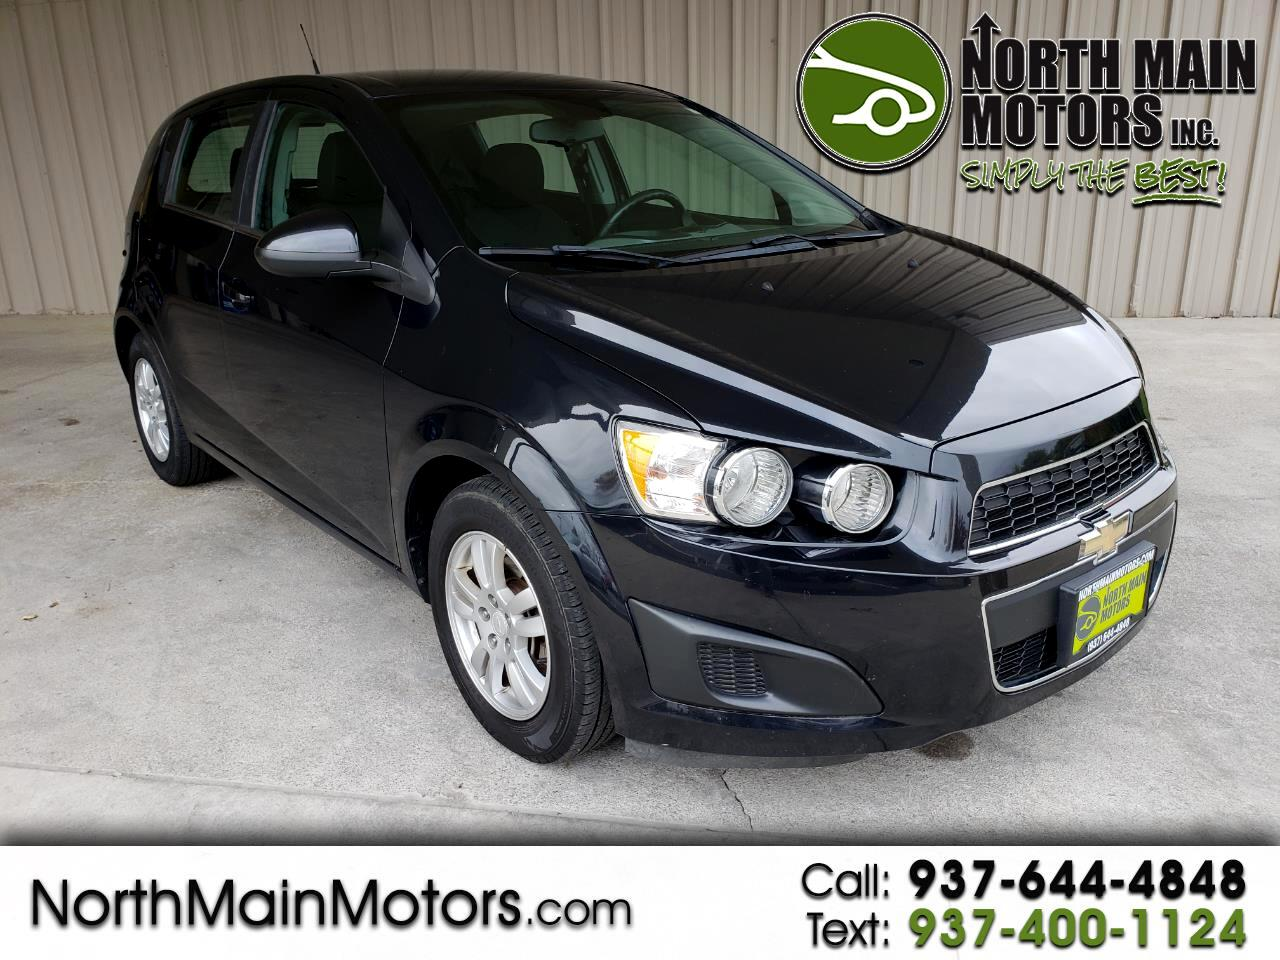 2013 Chevrolet Sonic 5dr HB Manual LT